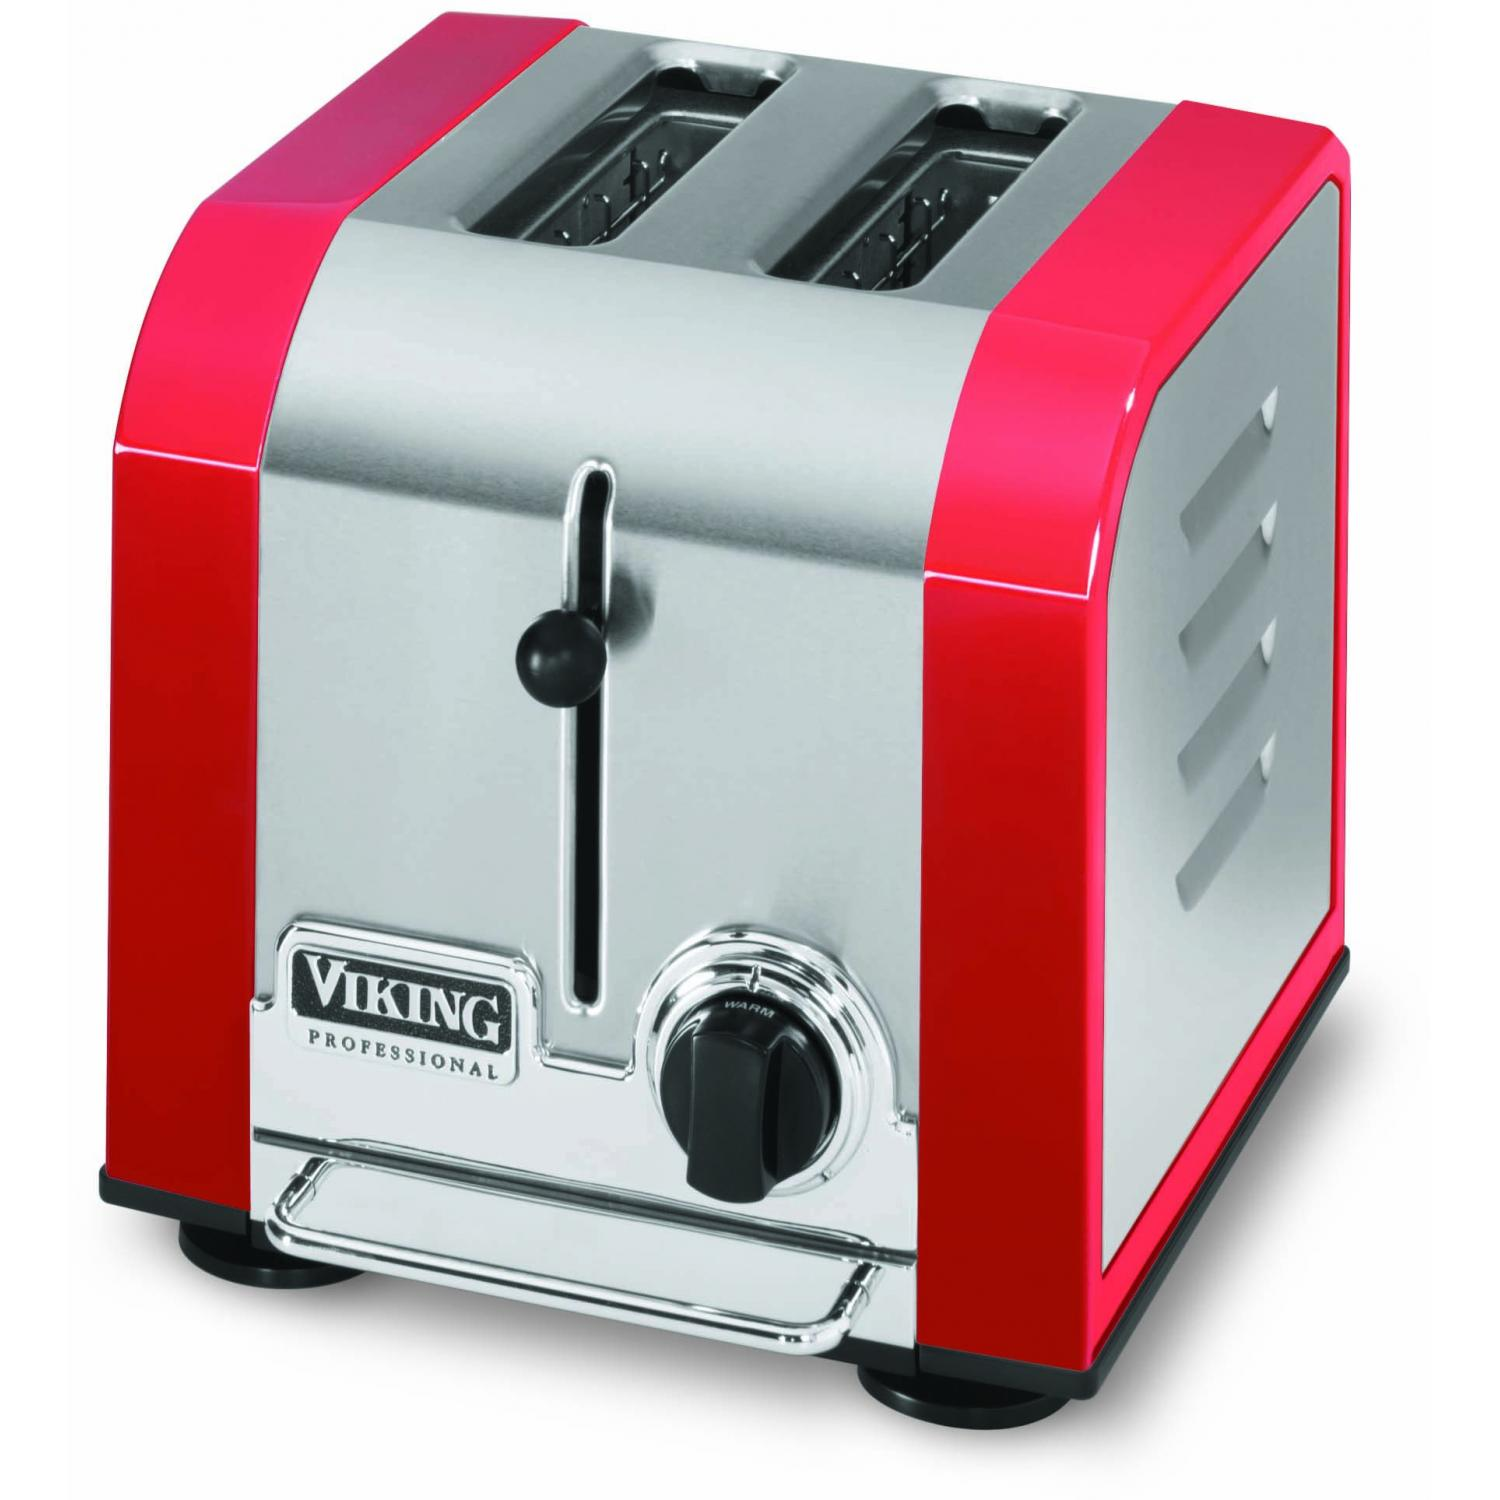 Viking VT201BR Professional 2-Slot Toaster - Bright Red